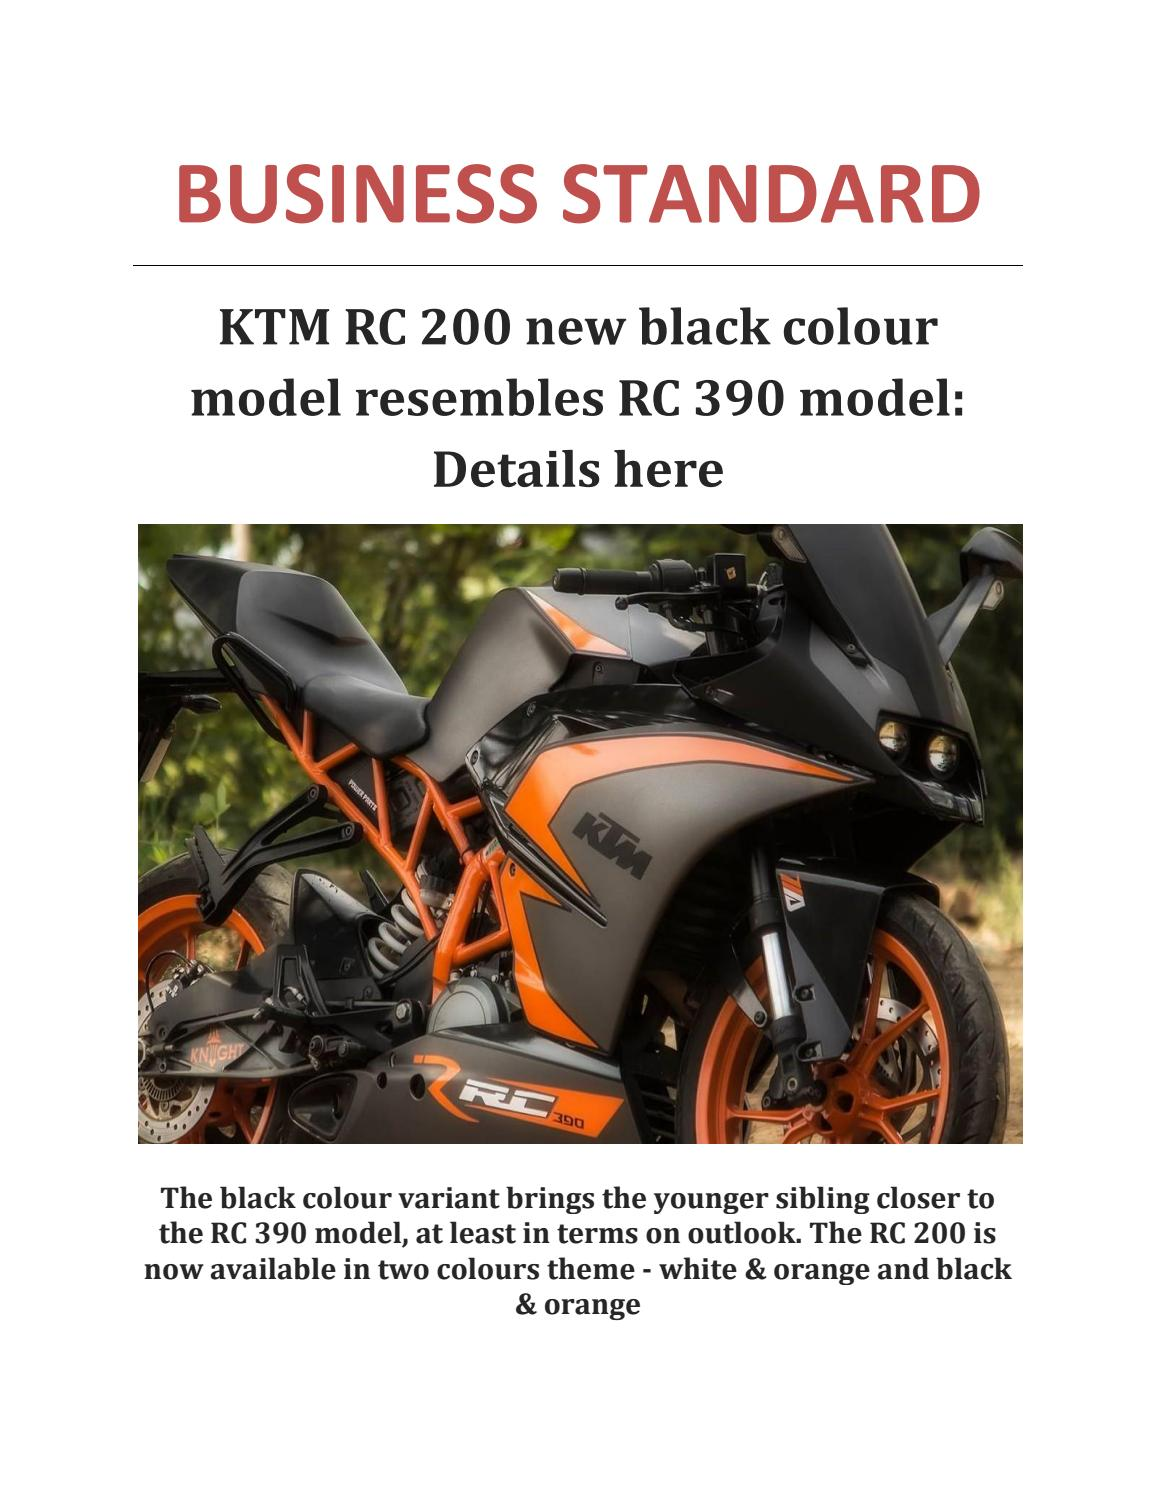 Ktm Rc 200 New Black Colour Model Resembles Rc 390 Model Details Here By Sharmaheena0 Issuu